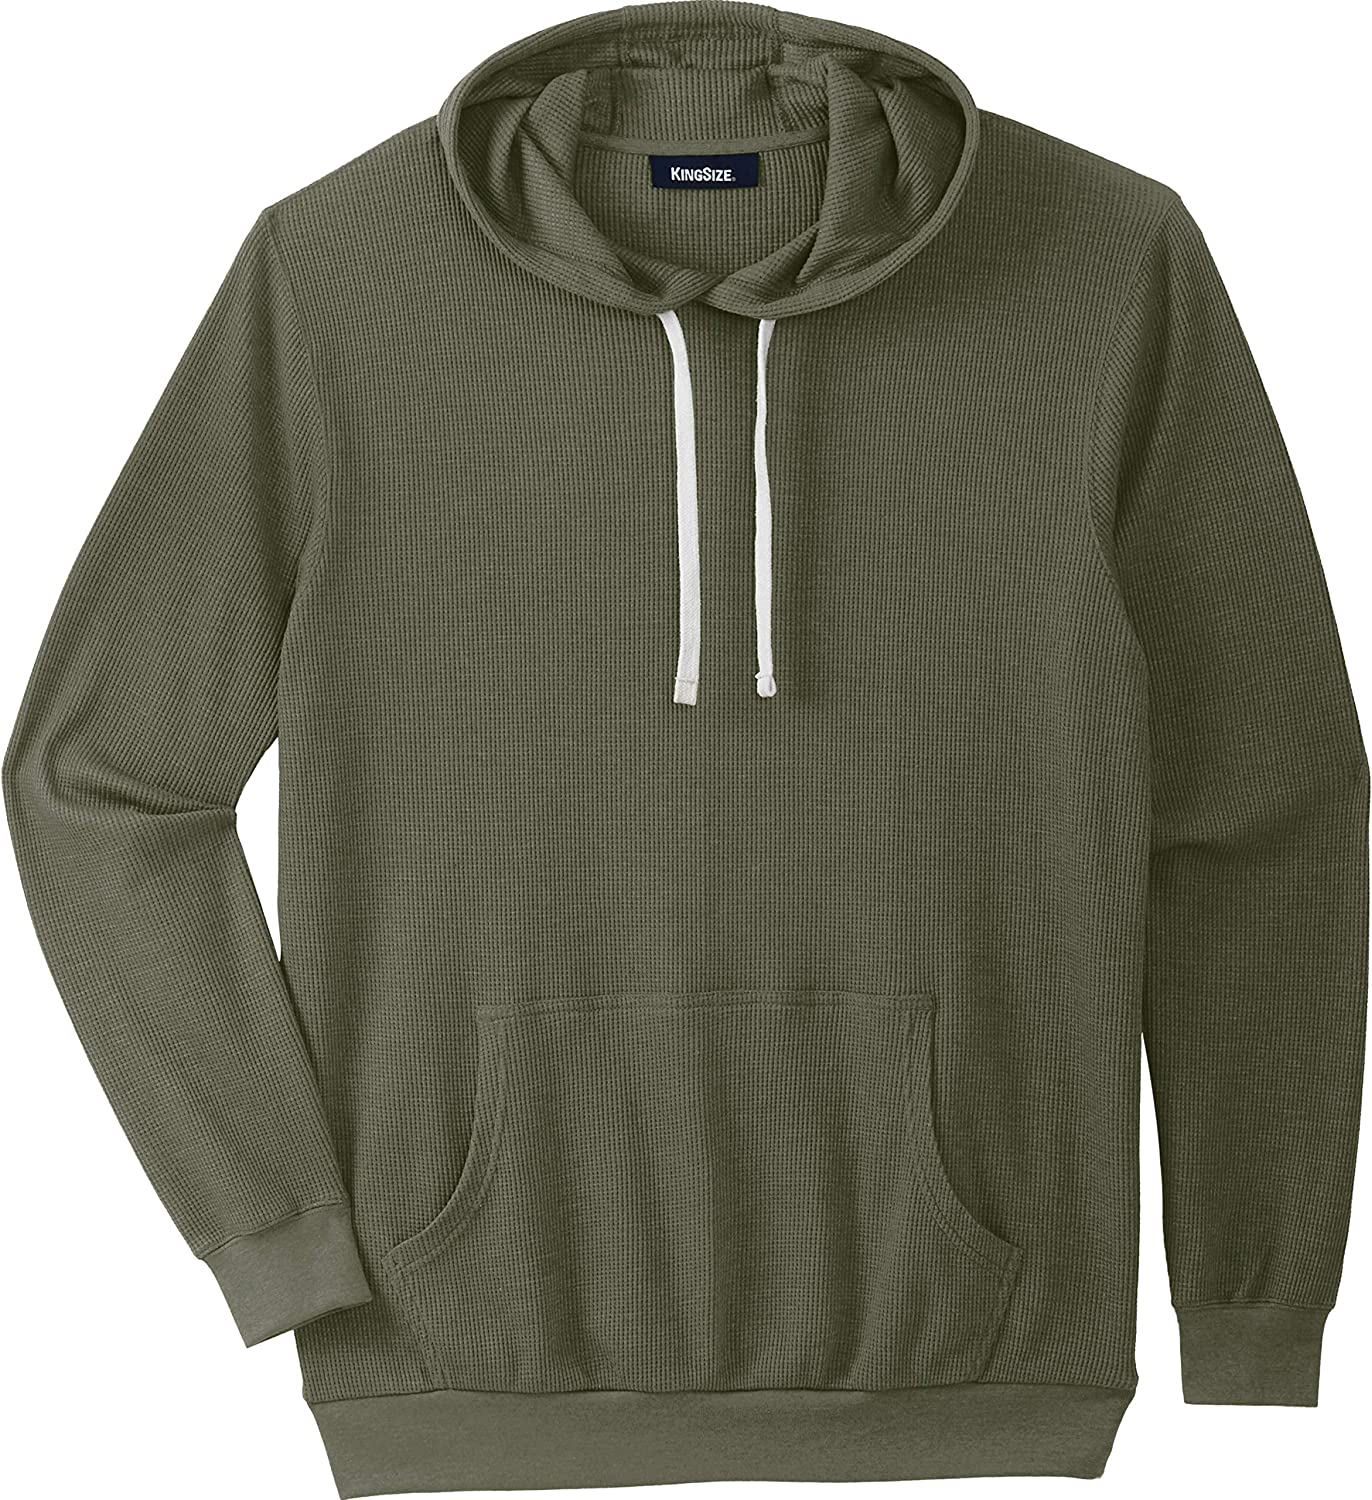 KingSize Men's Big & Tall Tall Waffle Knit Thermal Hoodie